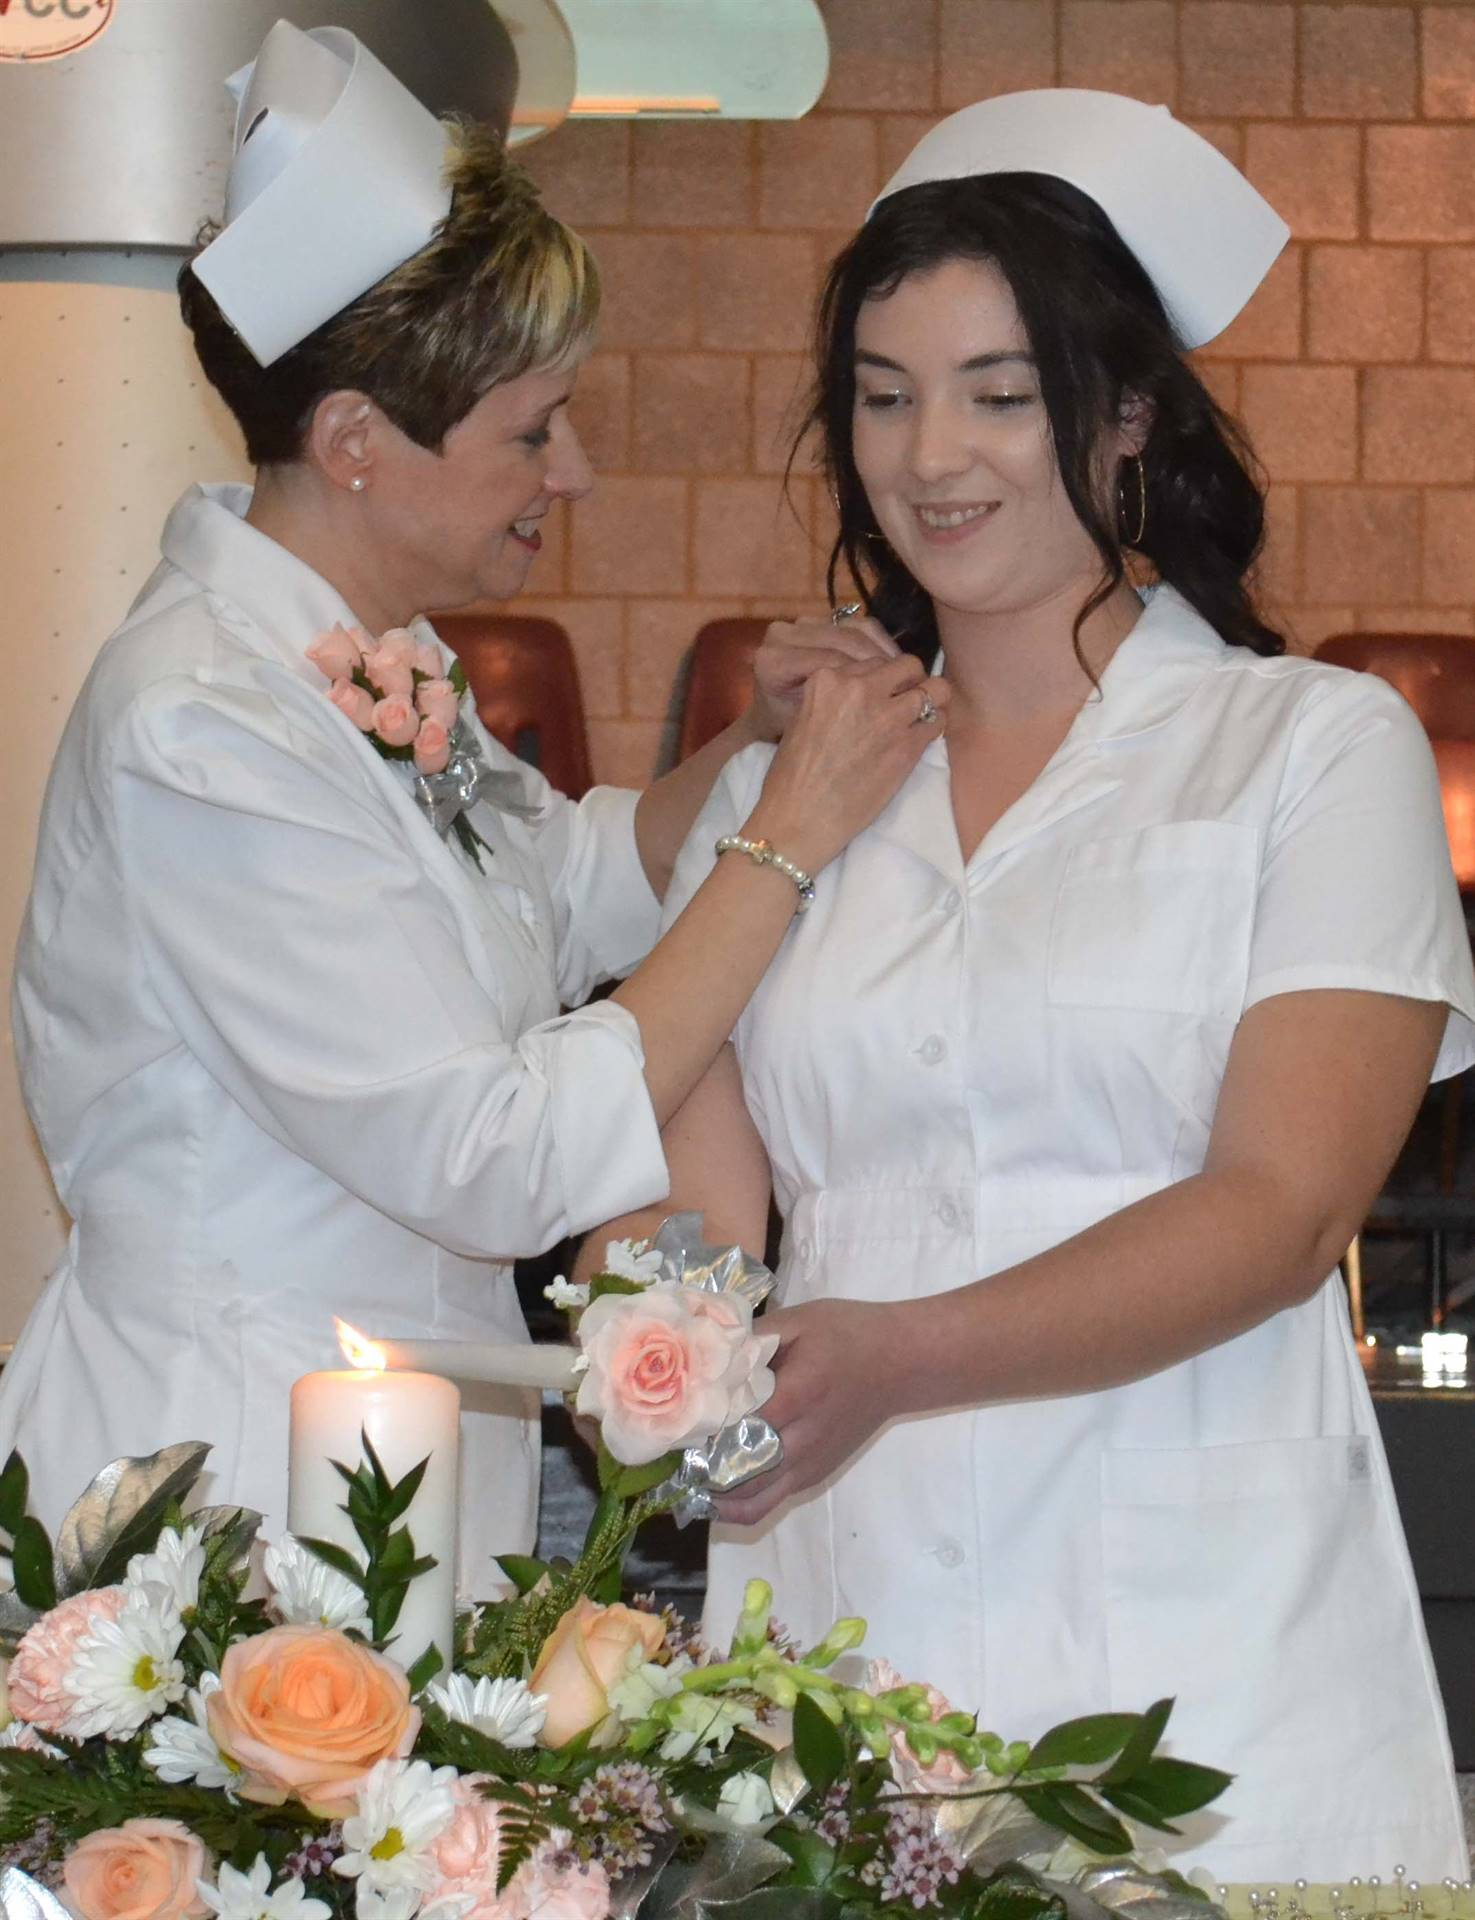 May 20, 2018 Dental Pinning and Capping Ceremony